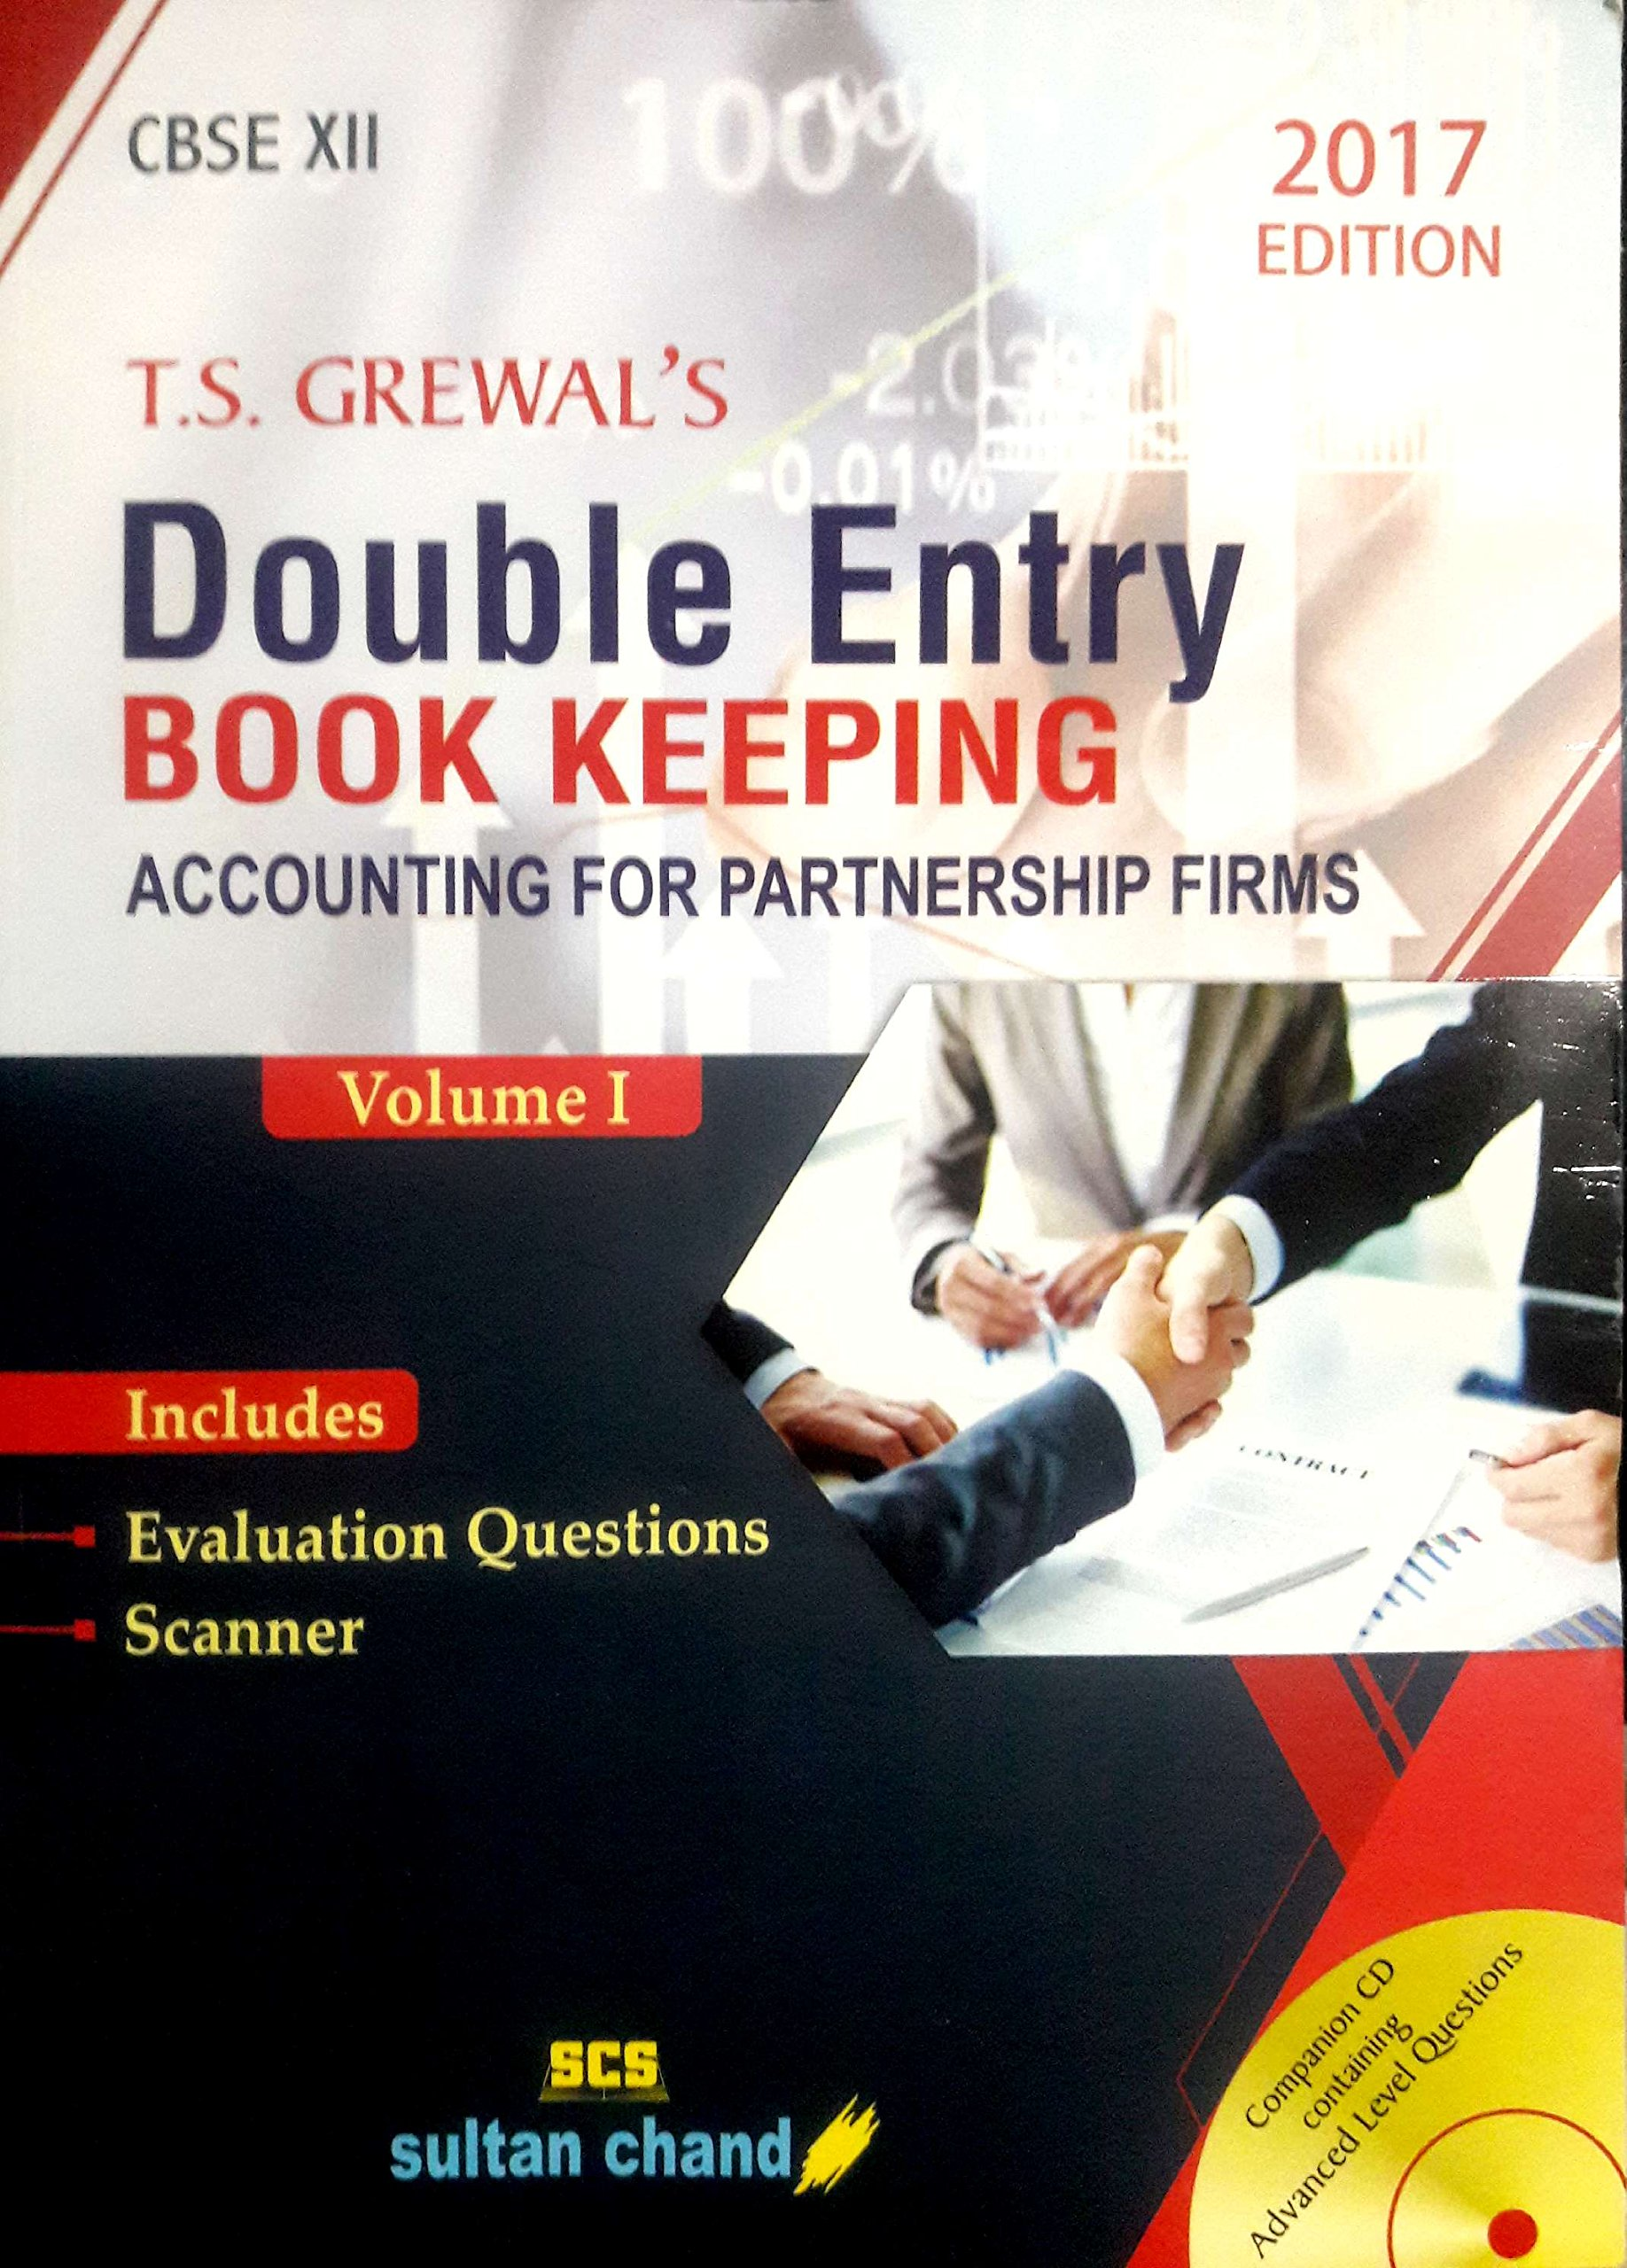 DOUBLE ENTRY BOOK KEEPING ACCOUNTING FOR PARTNERSHIP FIRMS VOLUME I